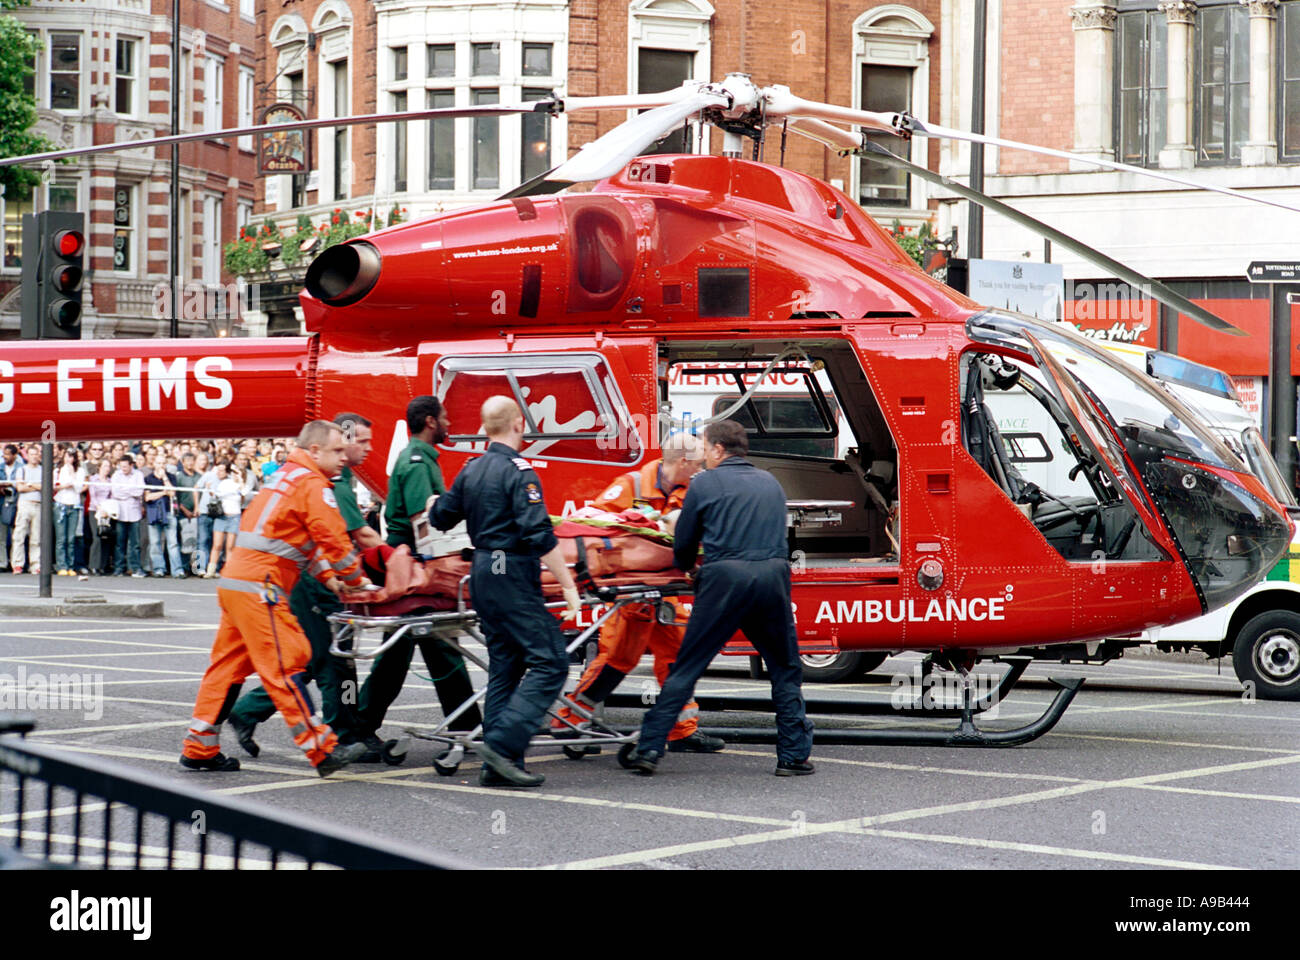 heli rescue with Stock Photo Virgin Air Ambulance Helicopter London England Britain Uk 635972 on Stock Photo Virgin Air Ambulance Helicopter London England Britain Uk 635972 also Alphabet additionally Watch in addition 251 People Stranded Frances Legendary Aiguille Du Midi Cable Car Yesterday 45 Round Trip Heli Extractions Needed additionally Piaggio P180 Avanti Ii.